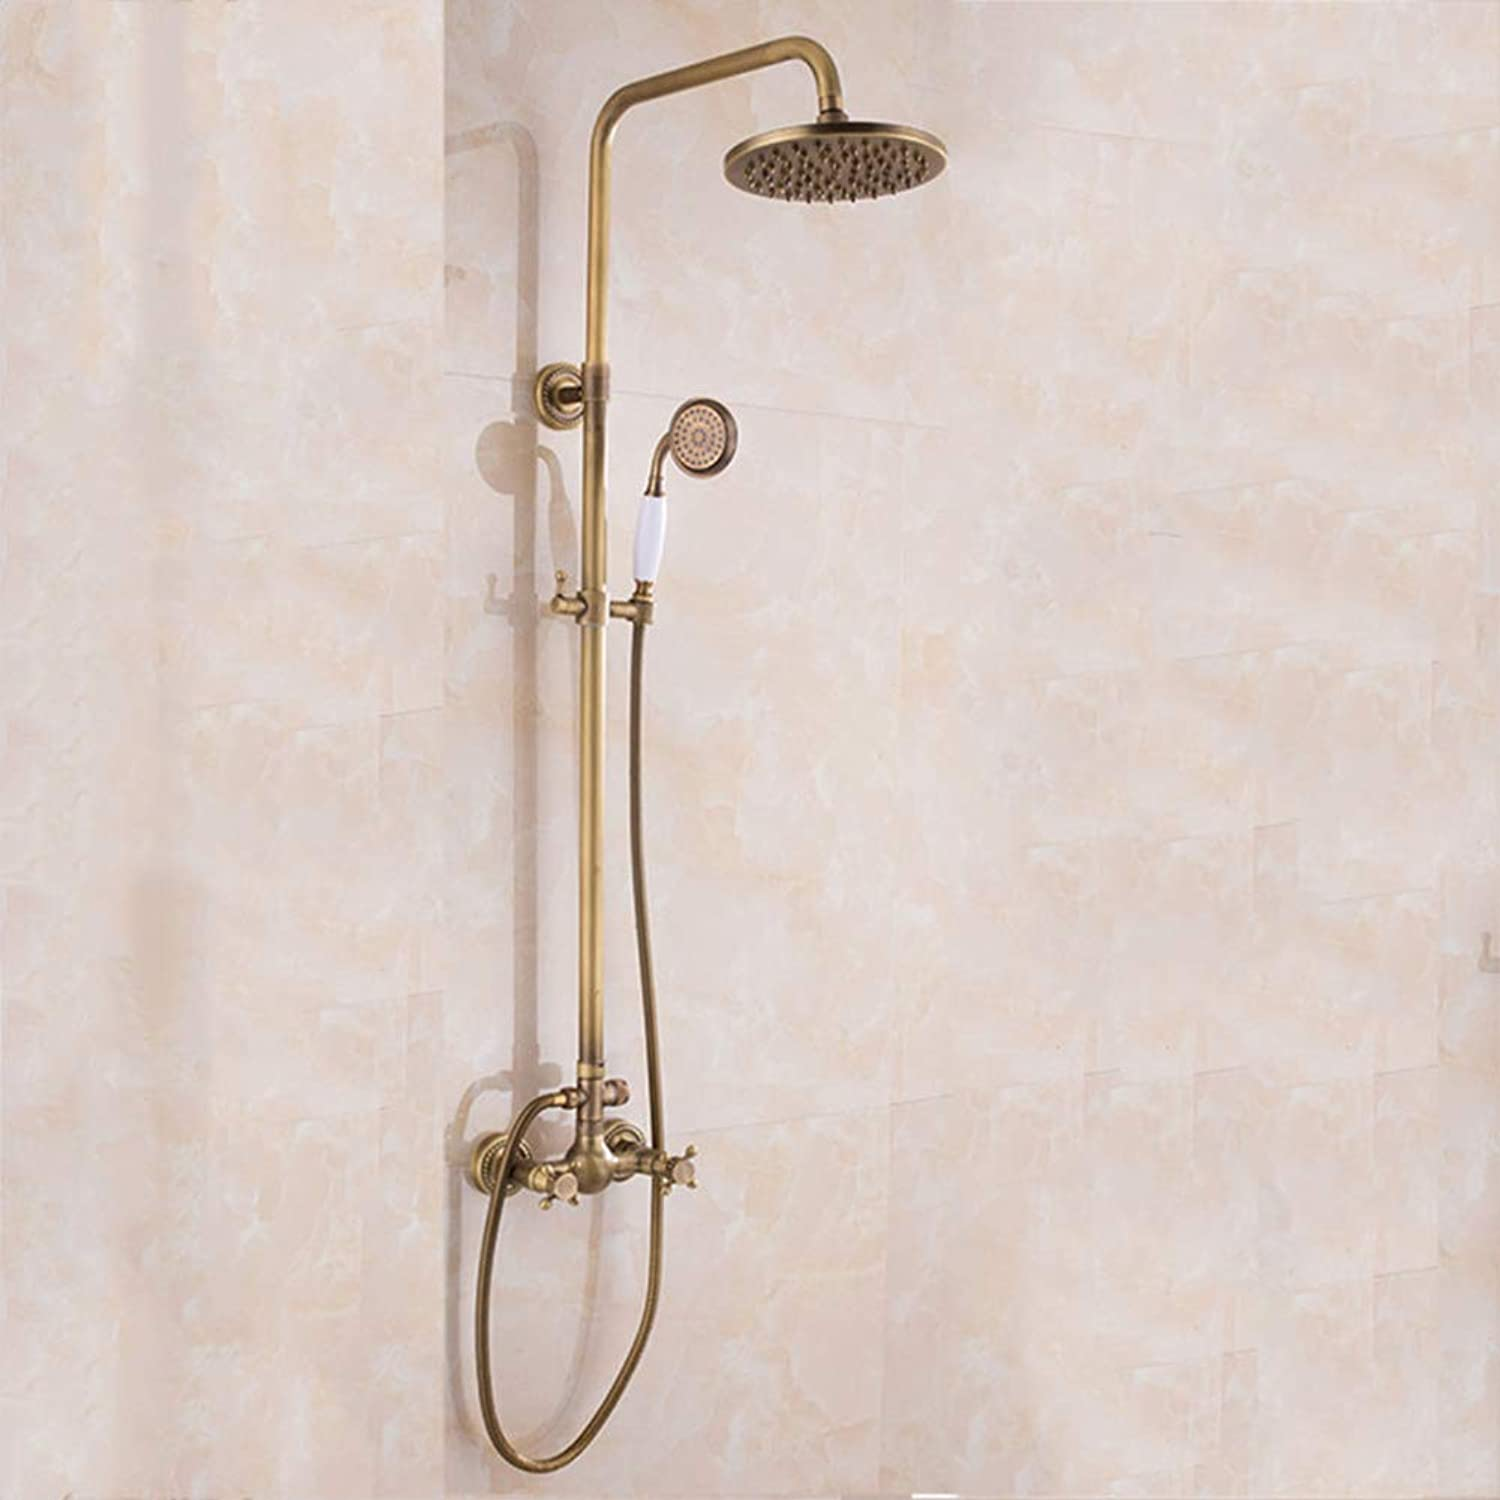 SMQ Shower kit, retro European style, hot and cold water mixer, multi-function, copper, shower head